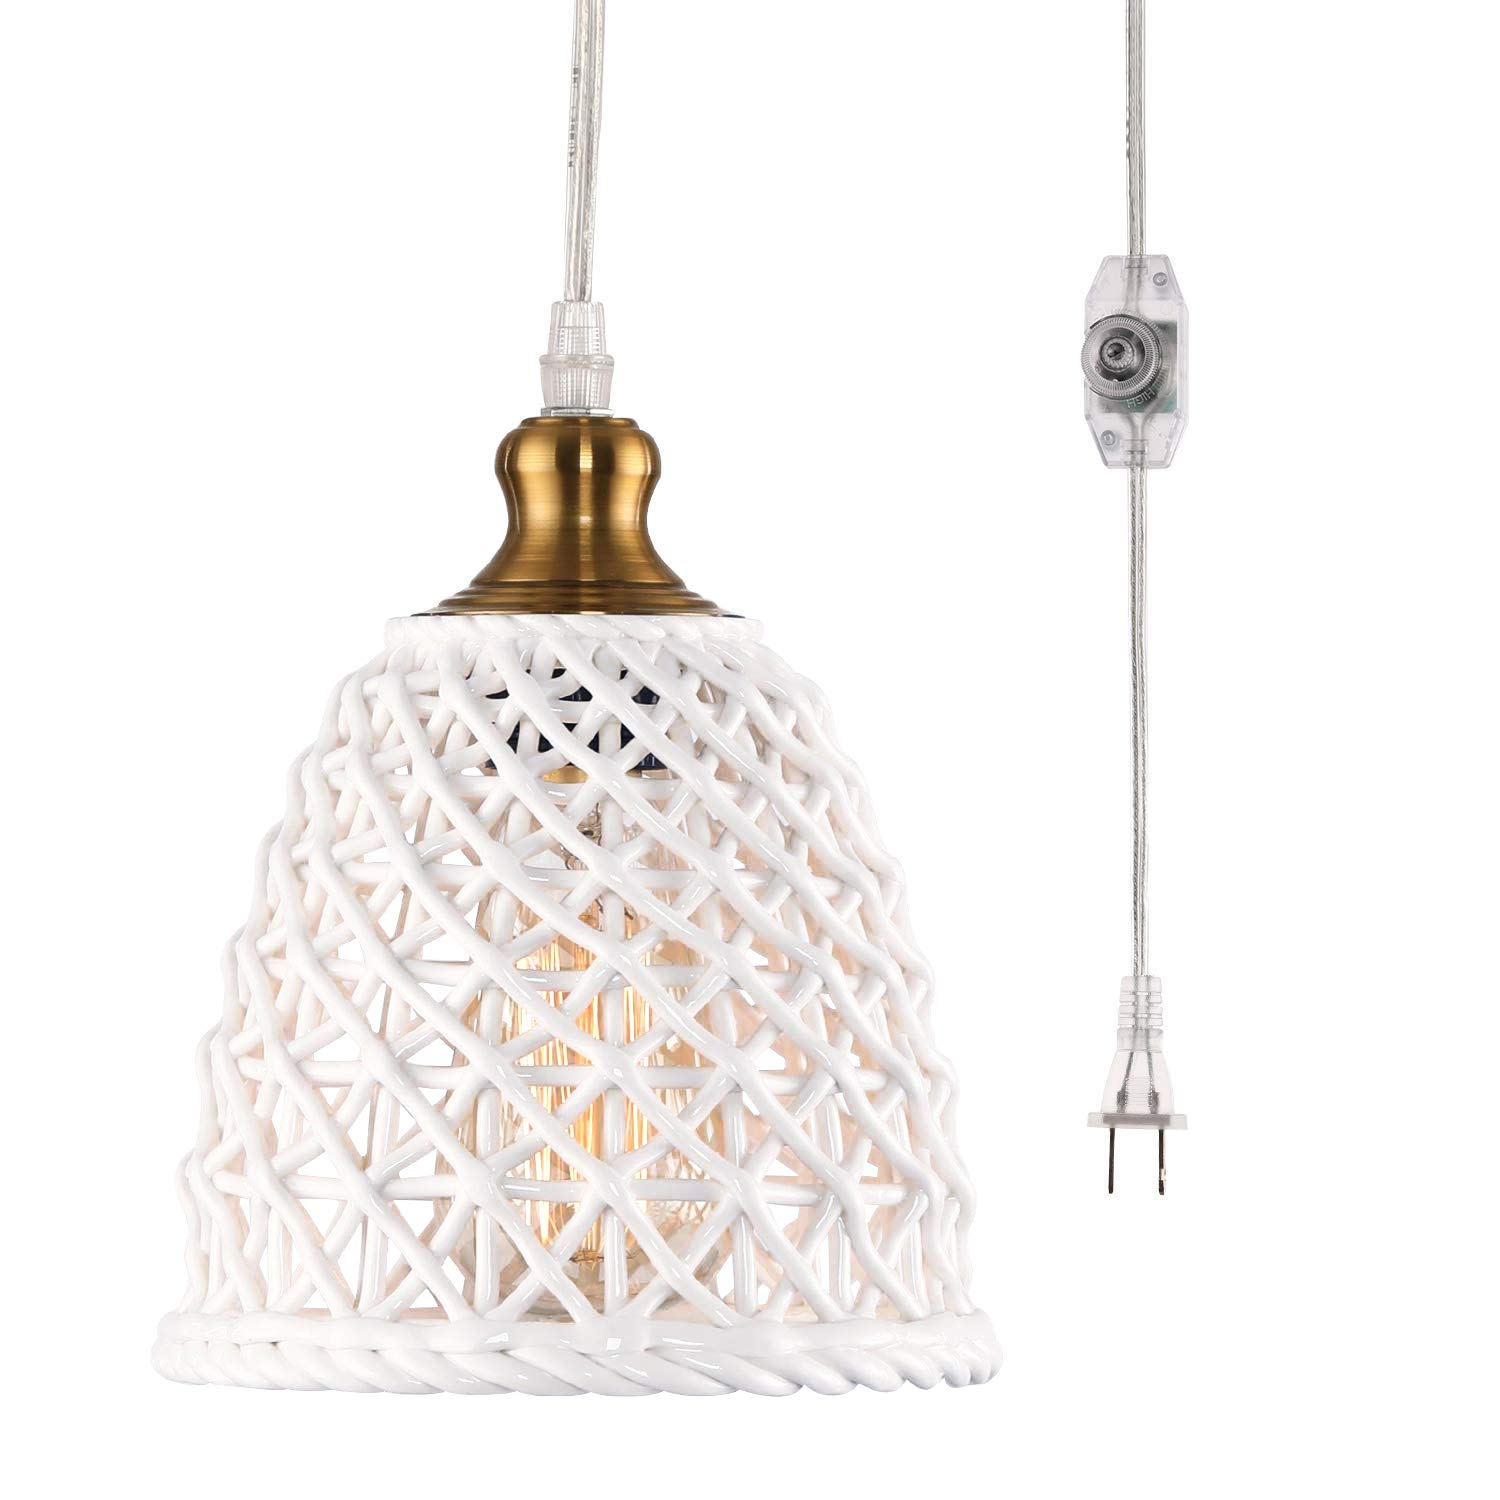 Hmvpl plug in pendant lights with 16 4 ft hanging cord and on off dimmer switch unique ceramic lighting fixture mini swag ceiling lamp for bedroom kitchen